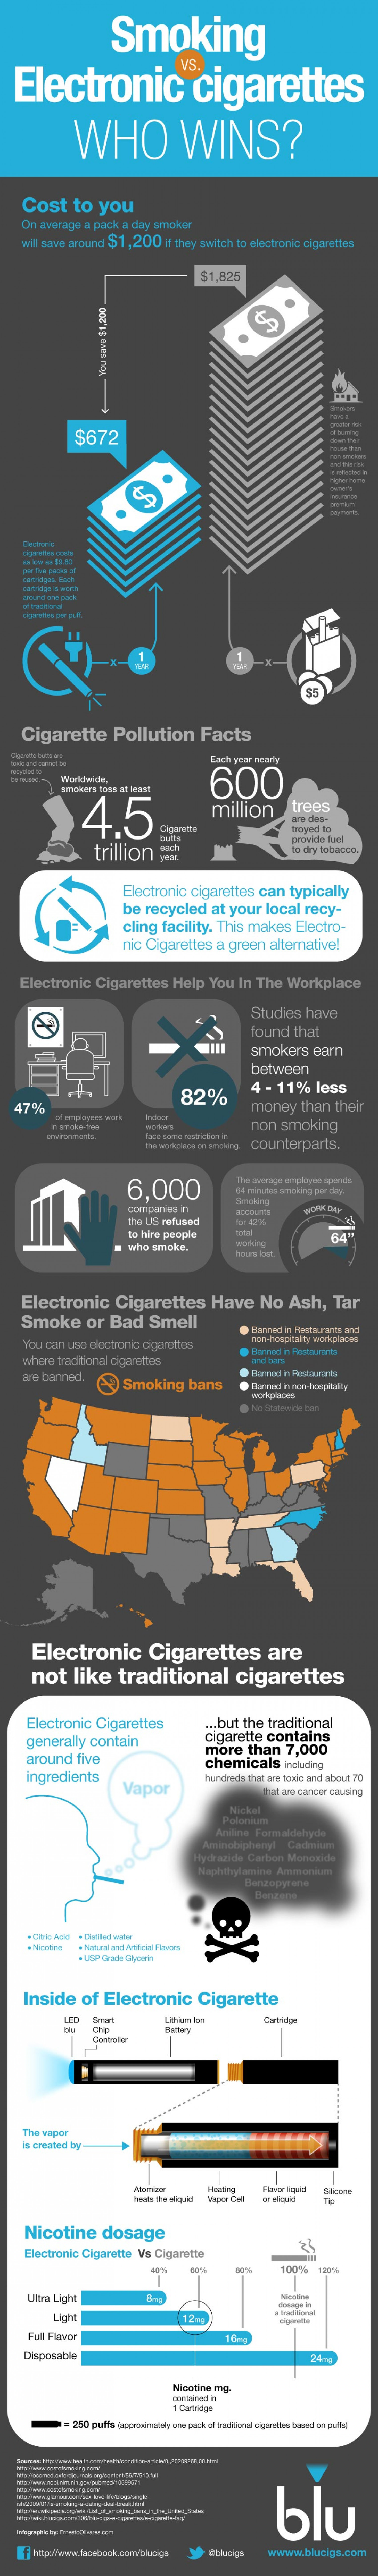 Smoking Electronic cigarettes, Who Wins? Infographic